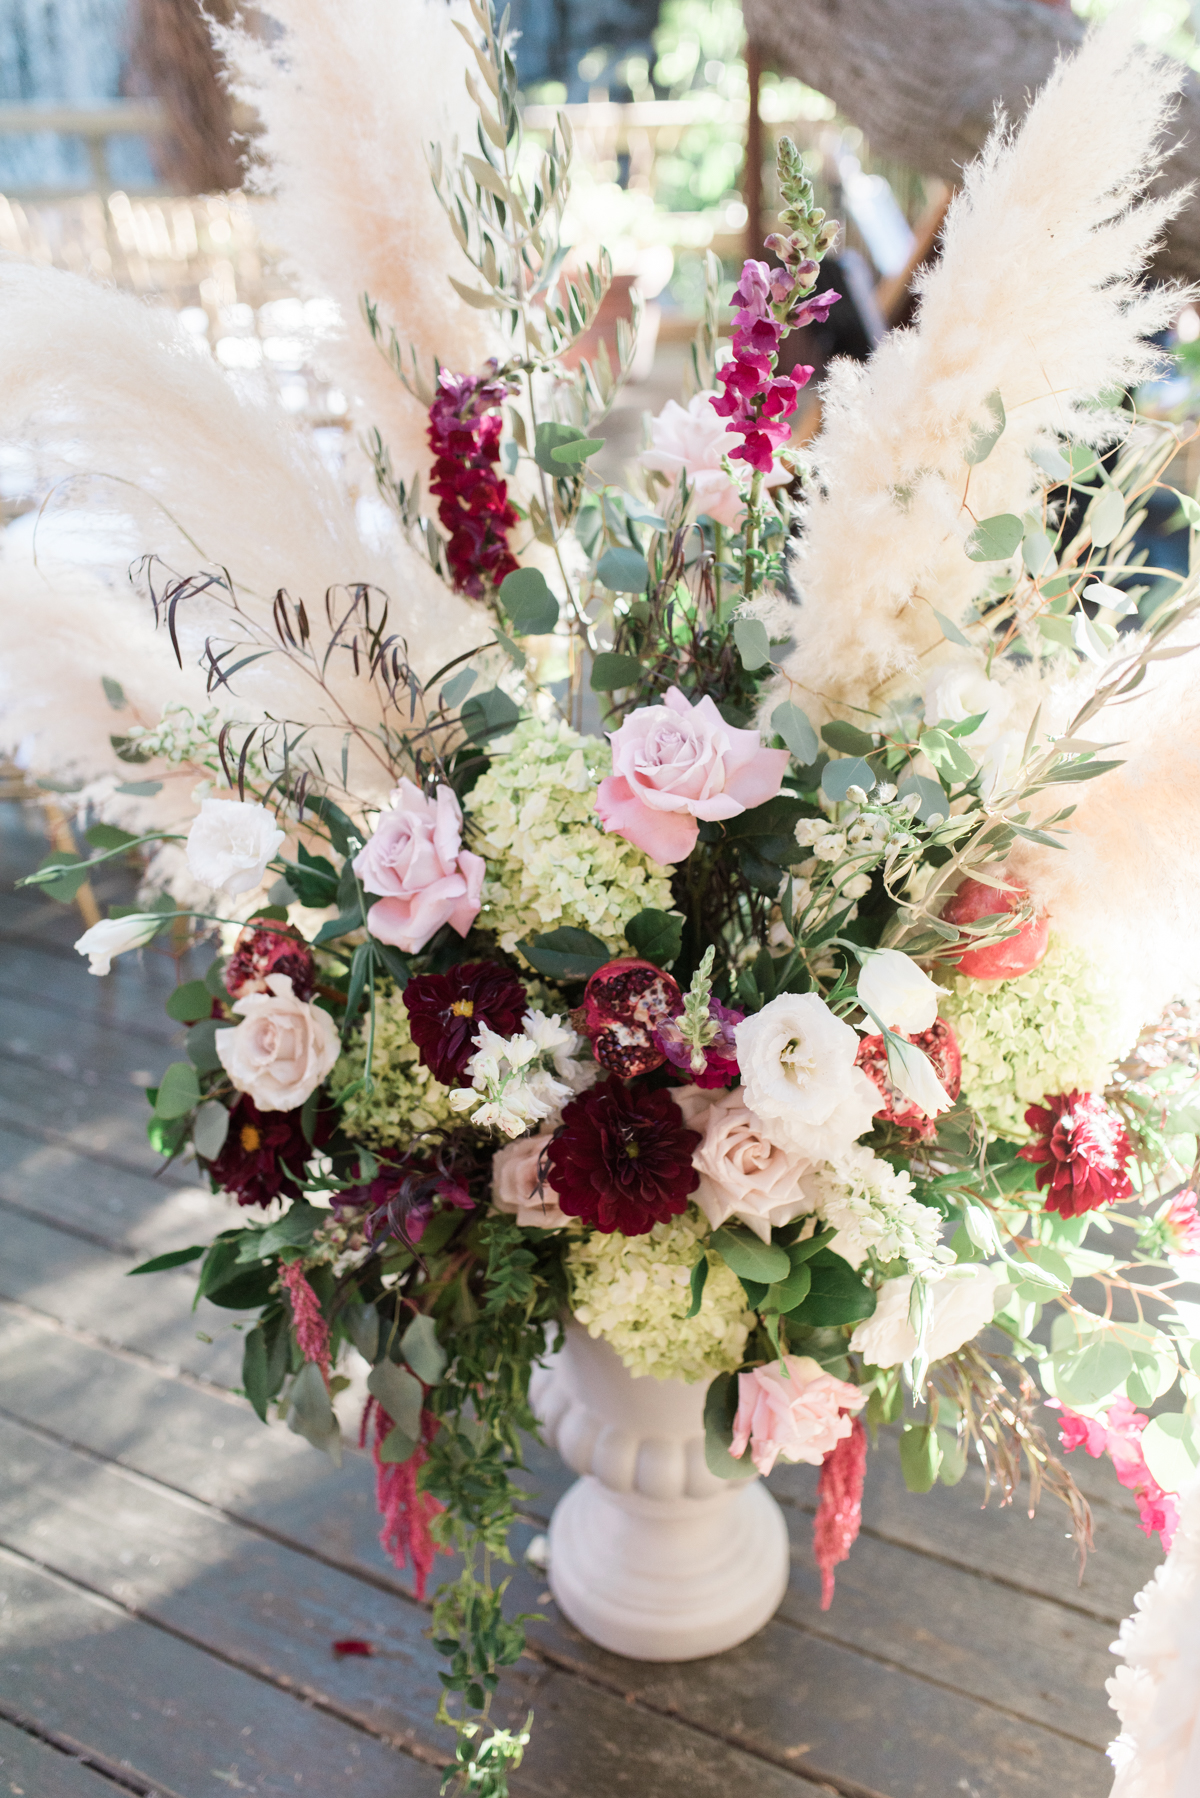 pampas grass wedding ideas pampas grass in vase with flowers at ceremony aisle entrance